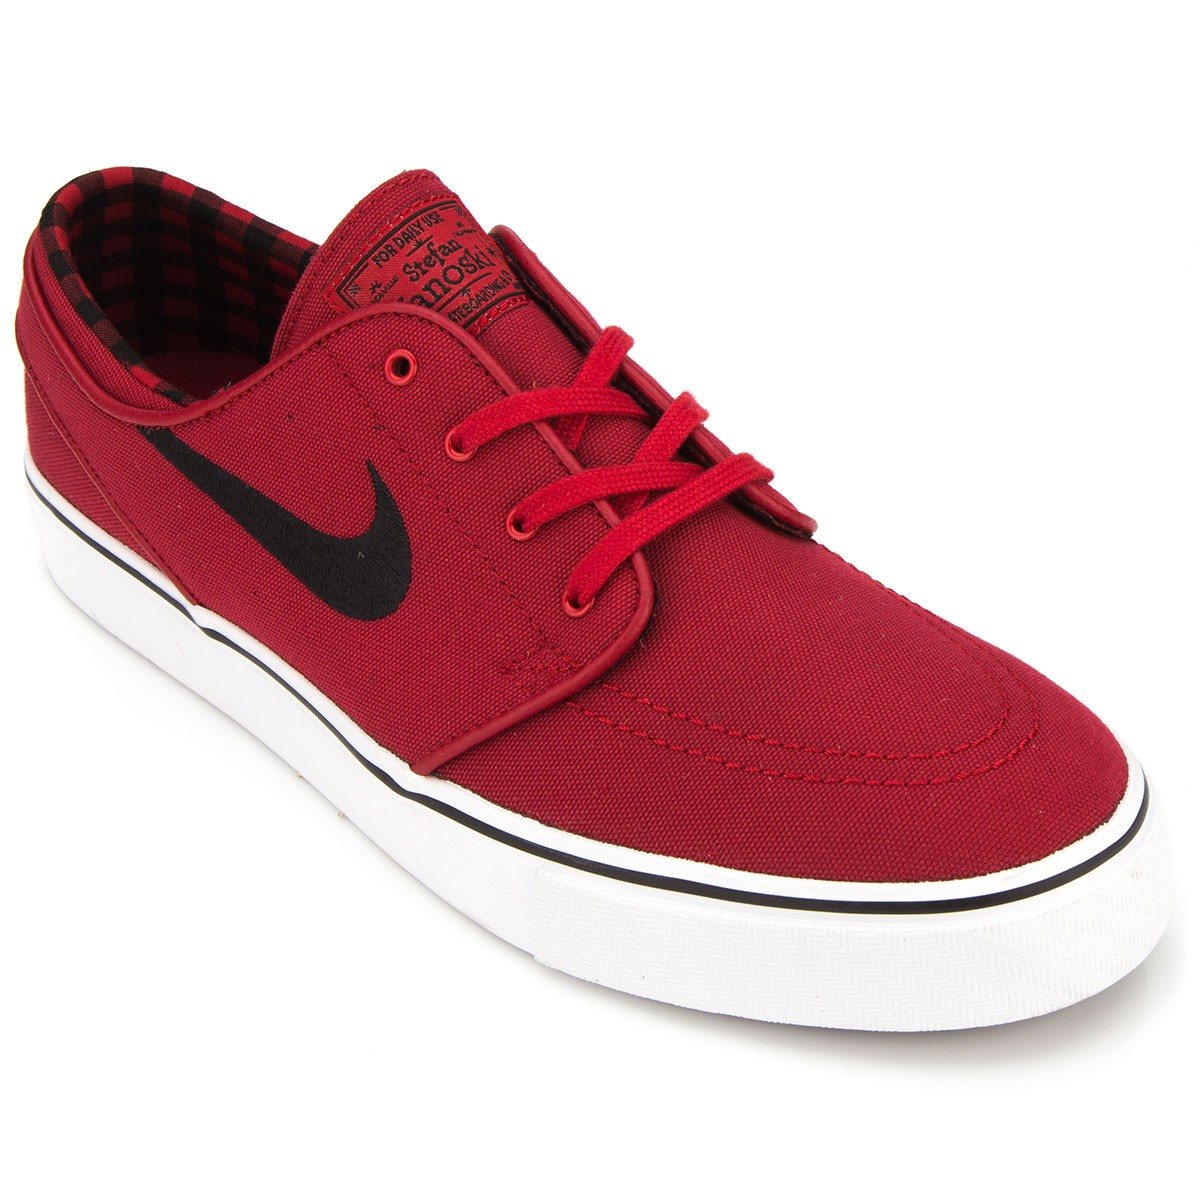 Stefan Janoski Shoe Laces For Sale